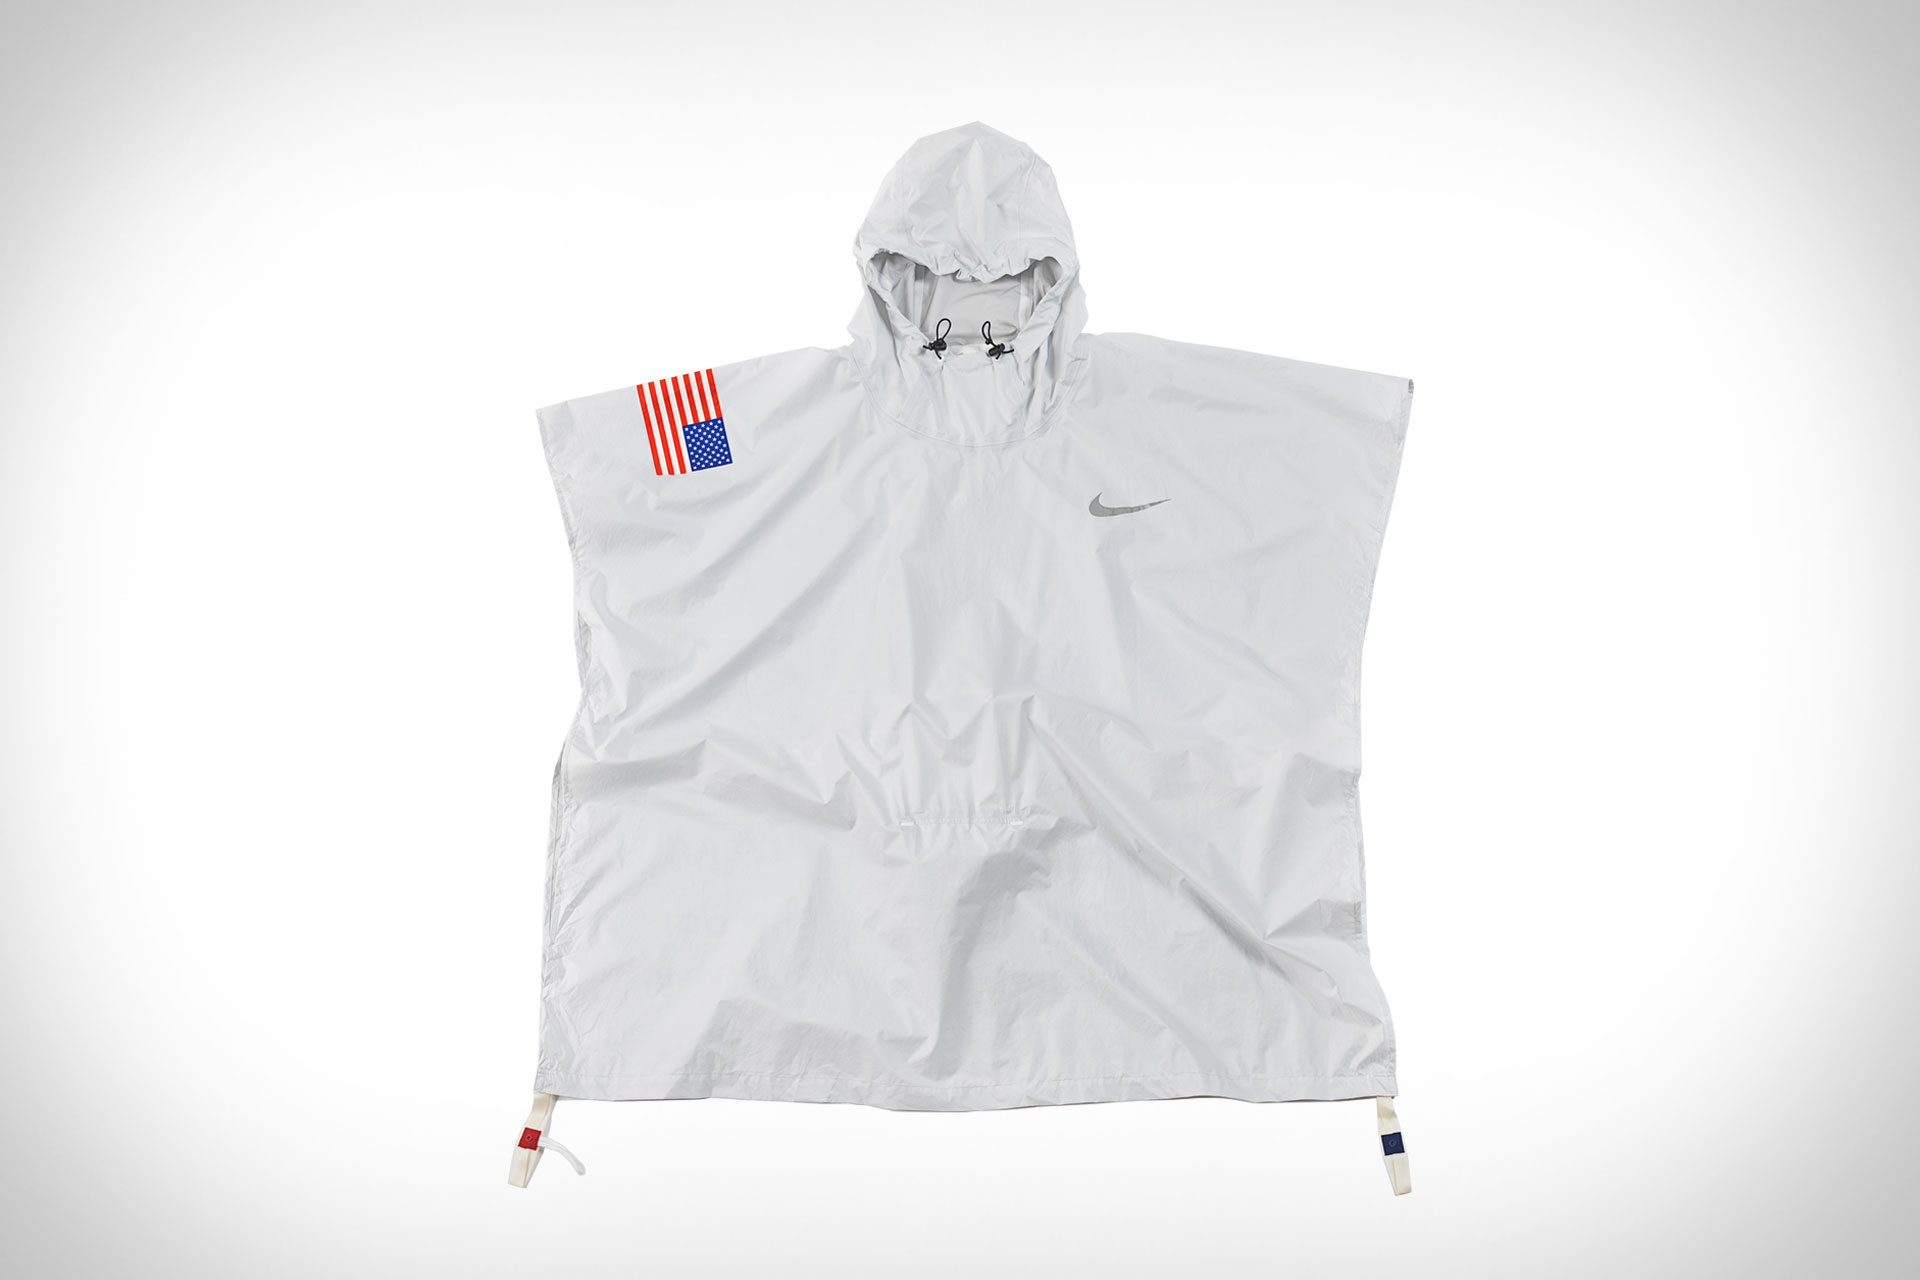 new style 644bb 85c36 Nike x Tom Sachs Poncho   Uncrate